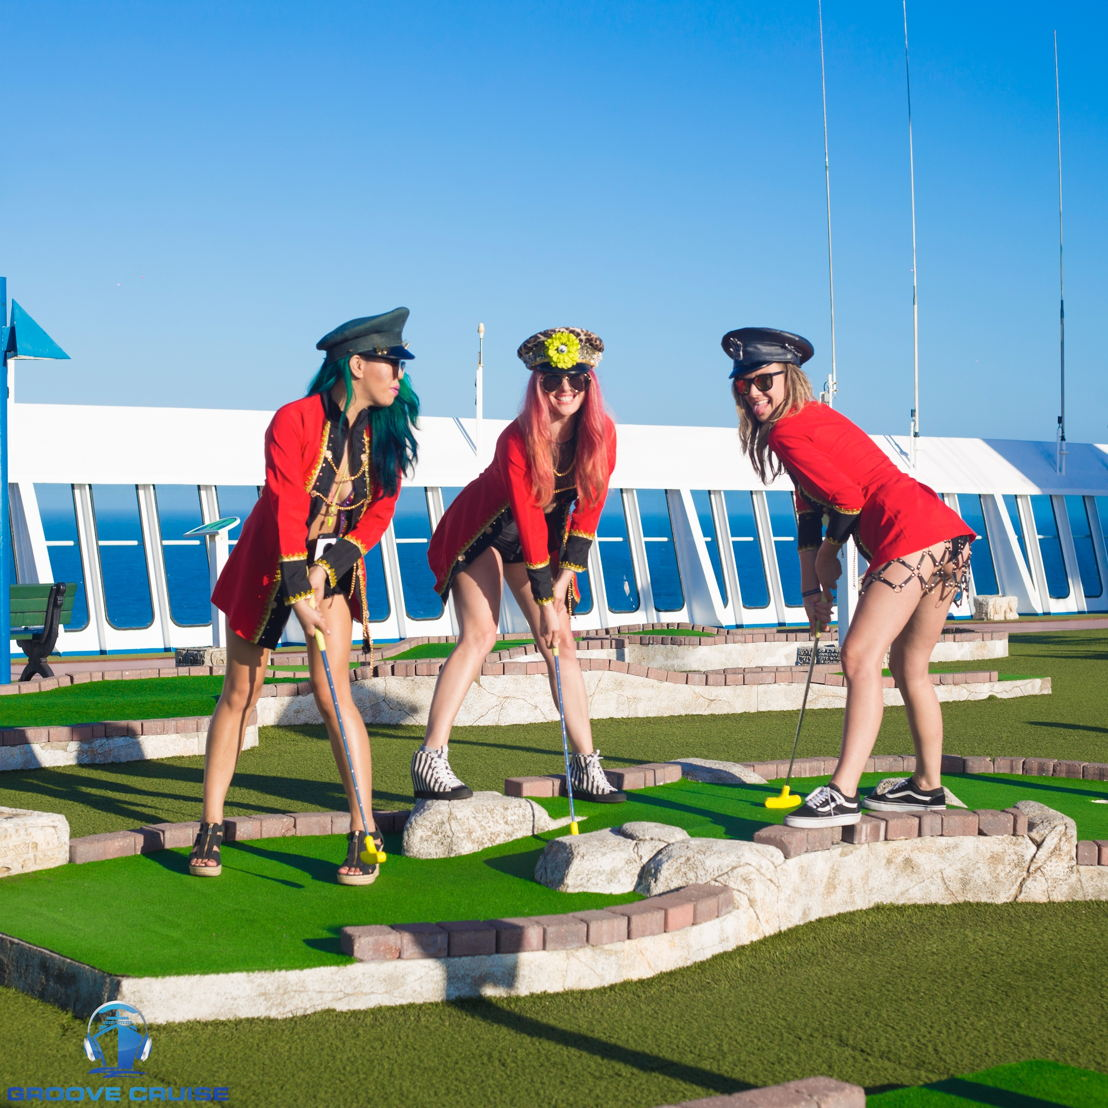 Mini-golf with GC Captains. credit: @veranmiky